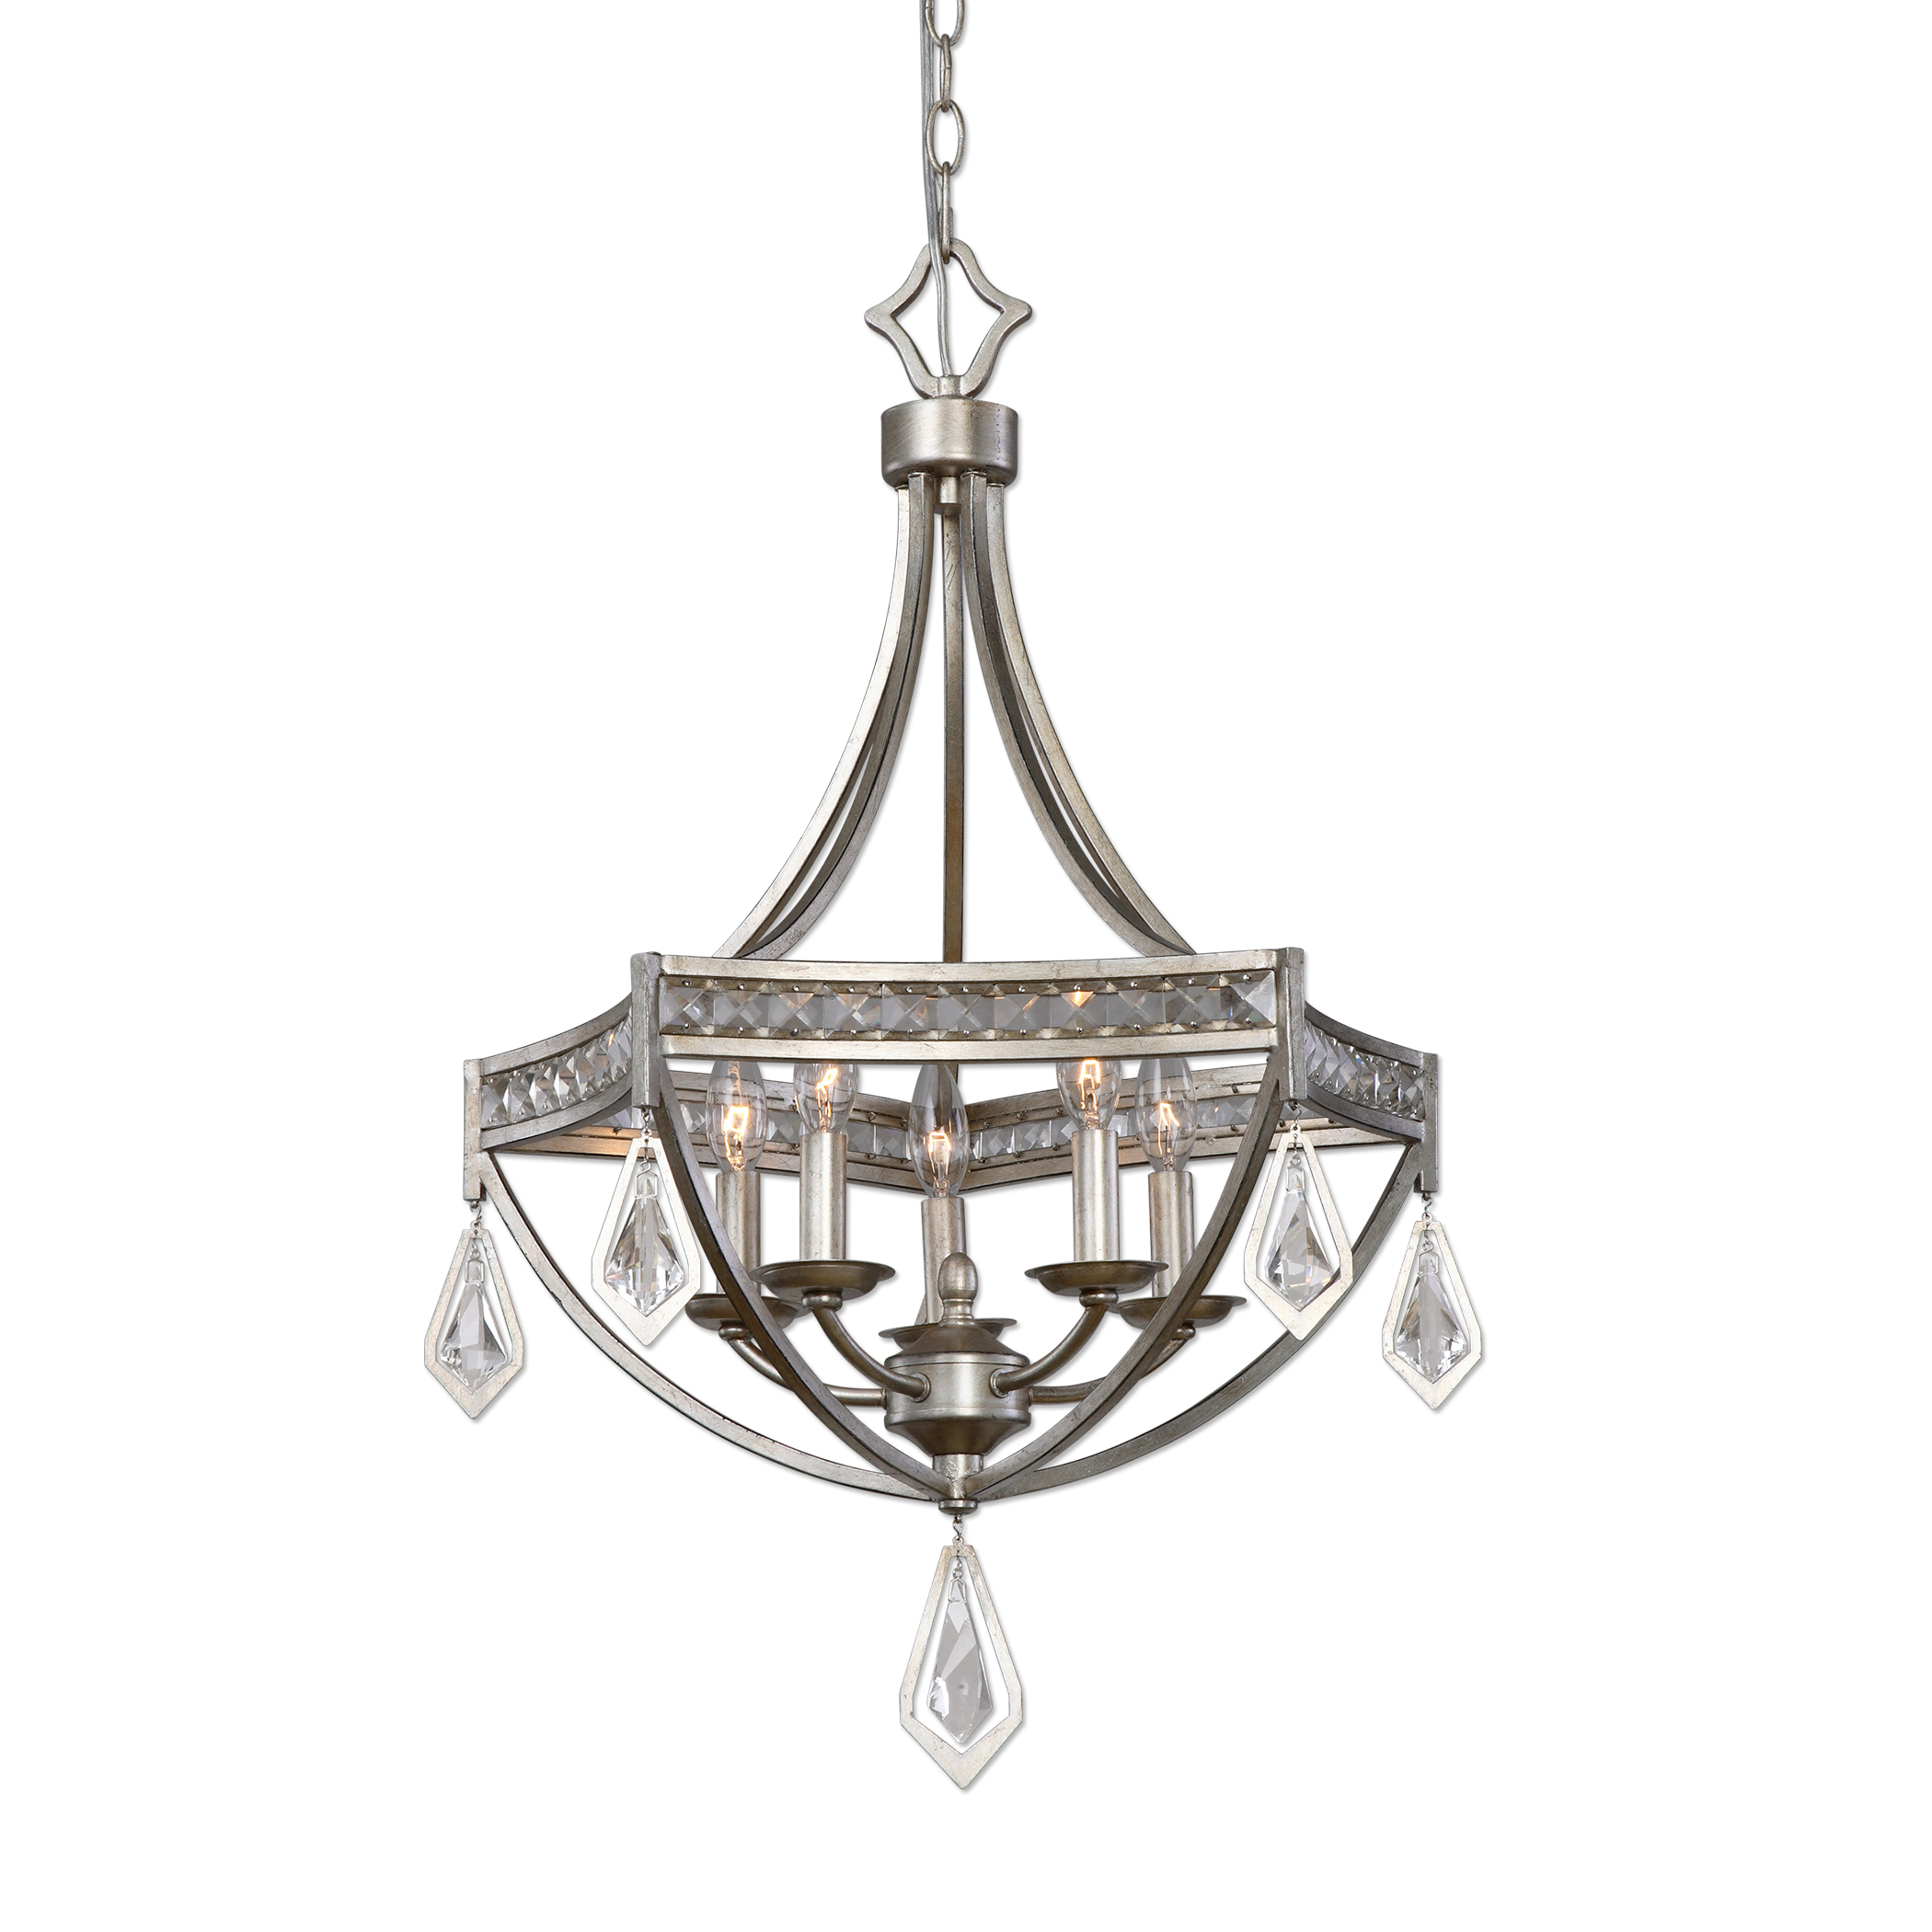 Uttermost Lighting Fixtures Tamworth Modern 5 Light Pendant - Item Number: 22081